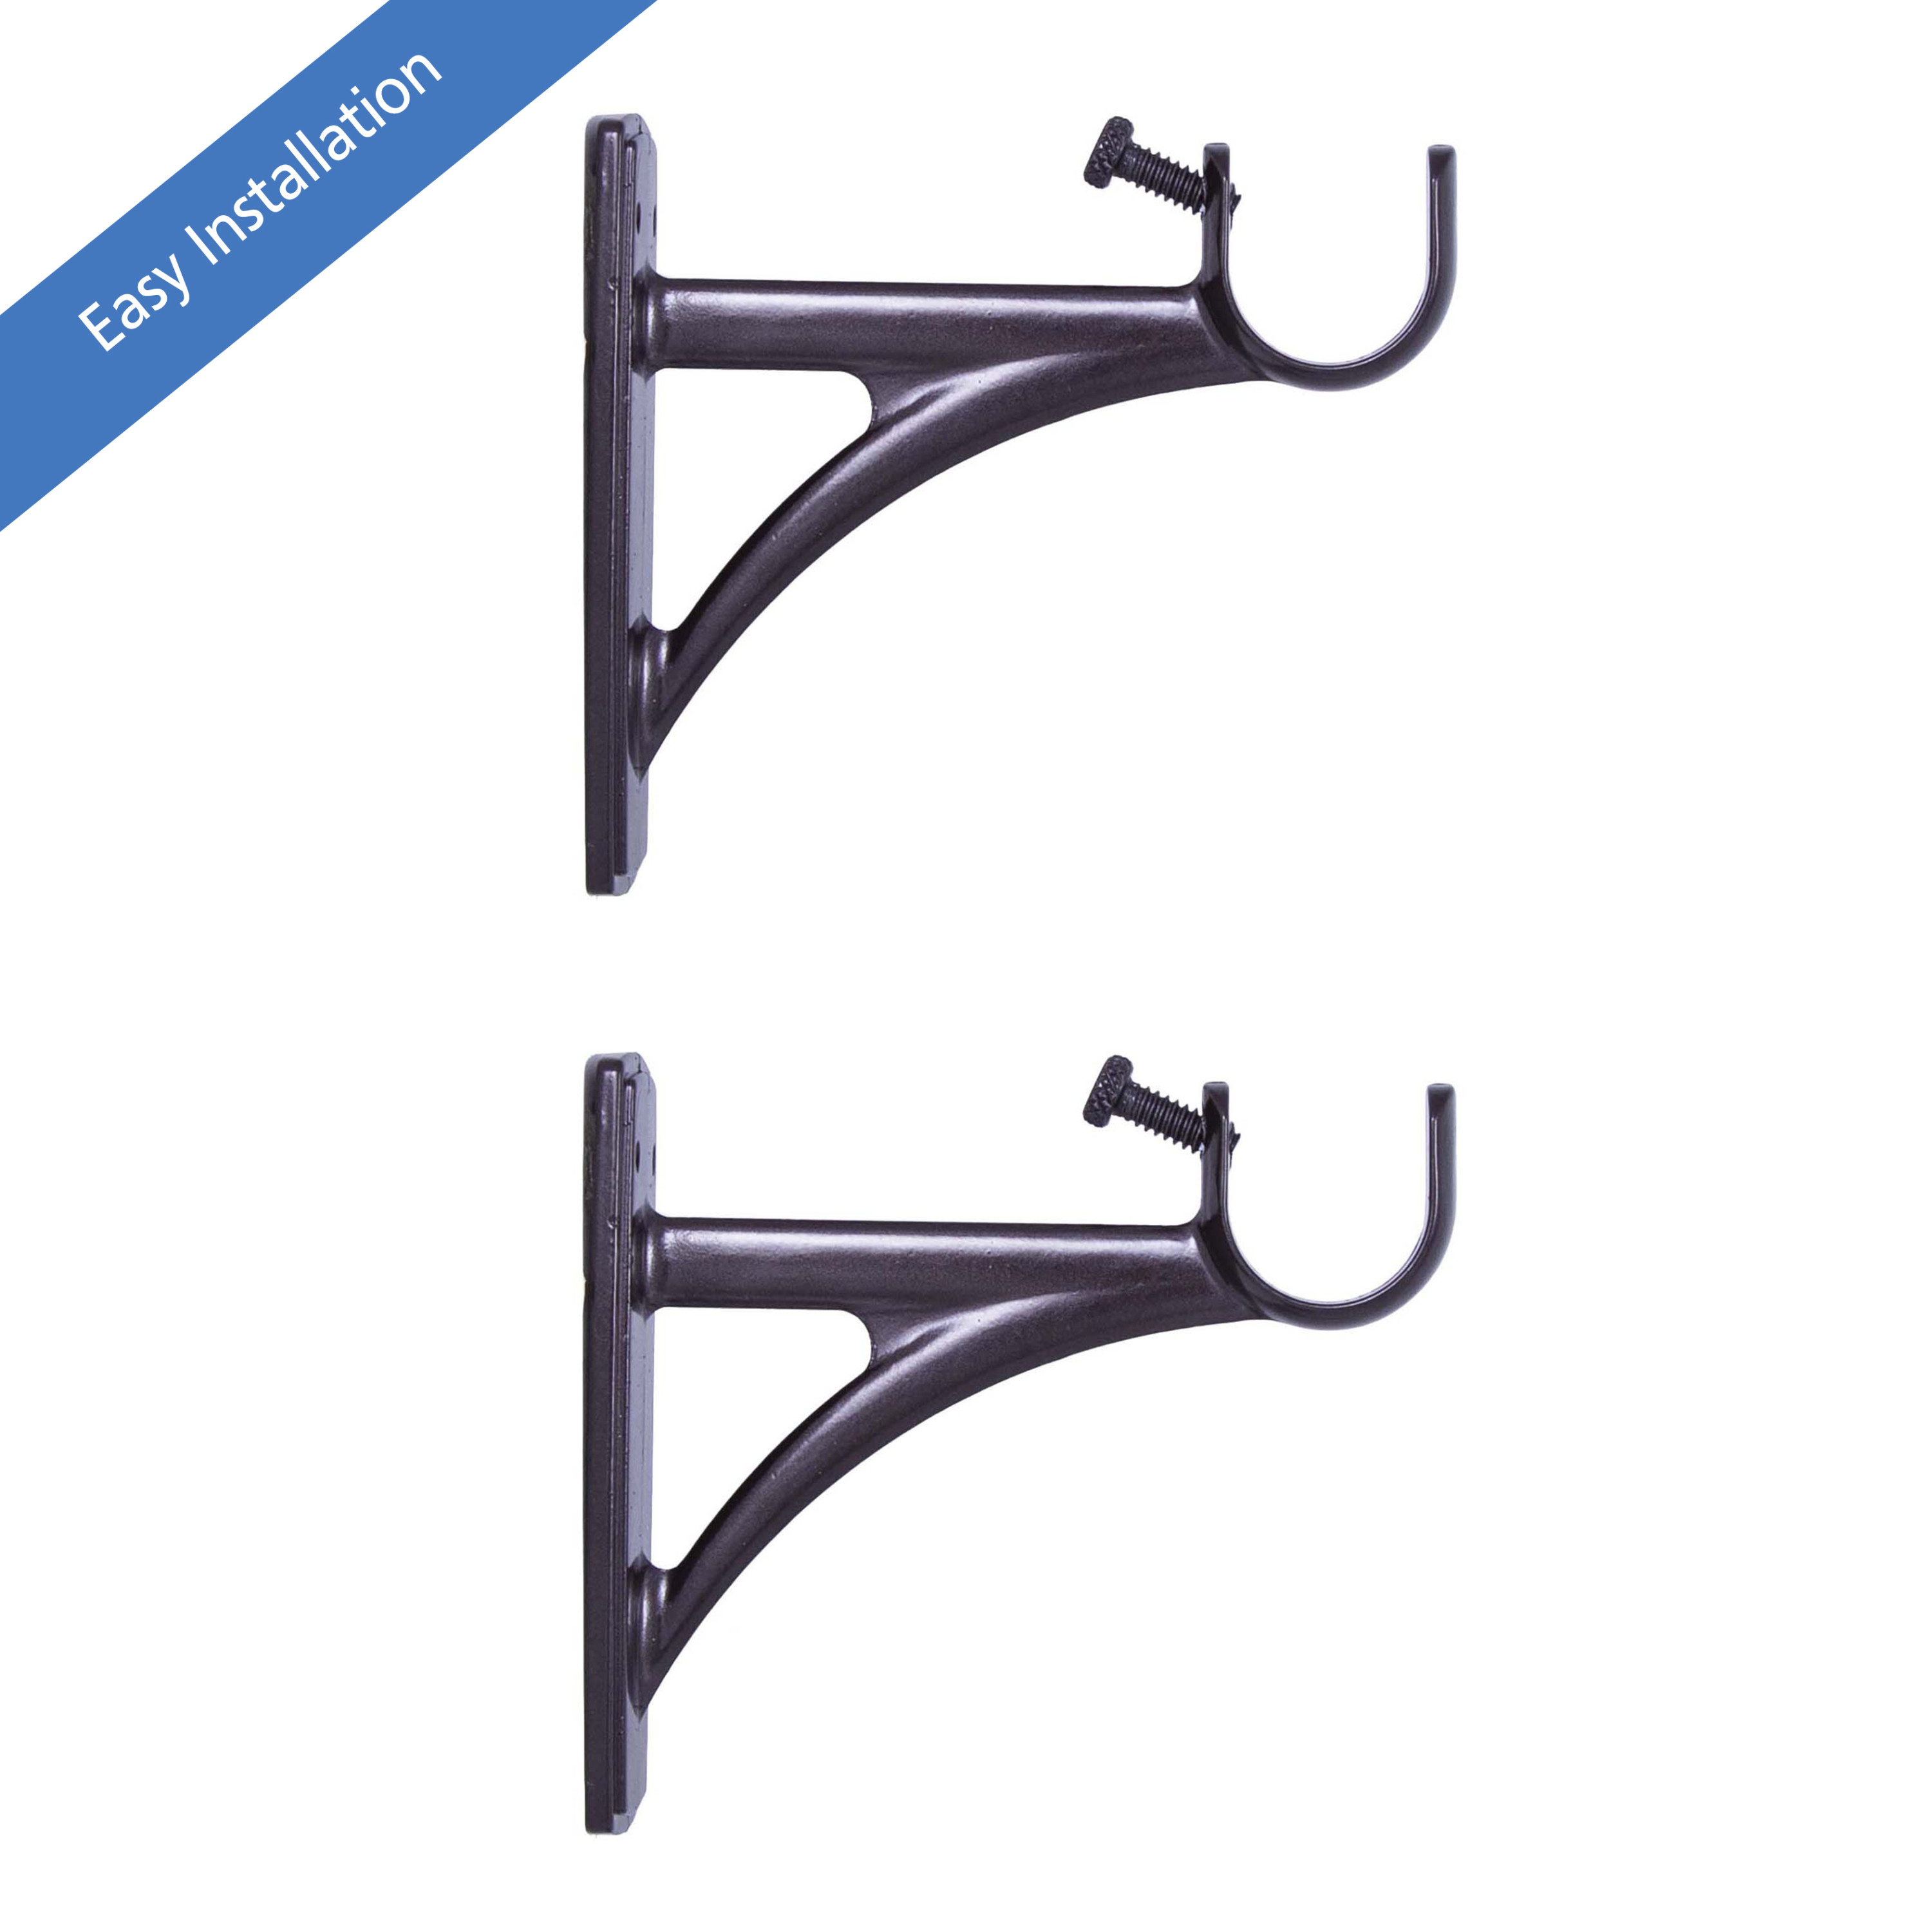 mainstays fast fit easy install single curtain rod brackets 3 4 in to 1 in diameter walmart com